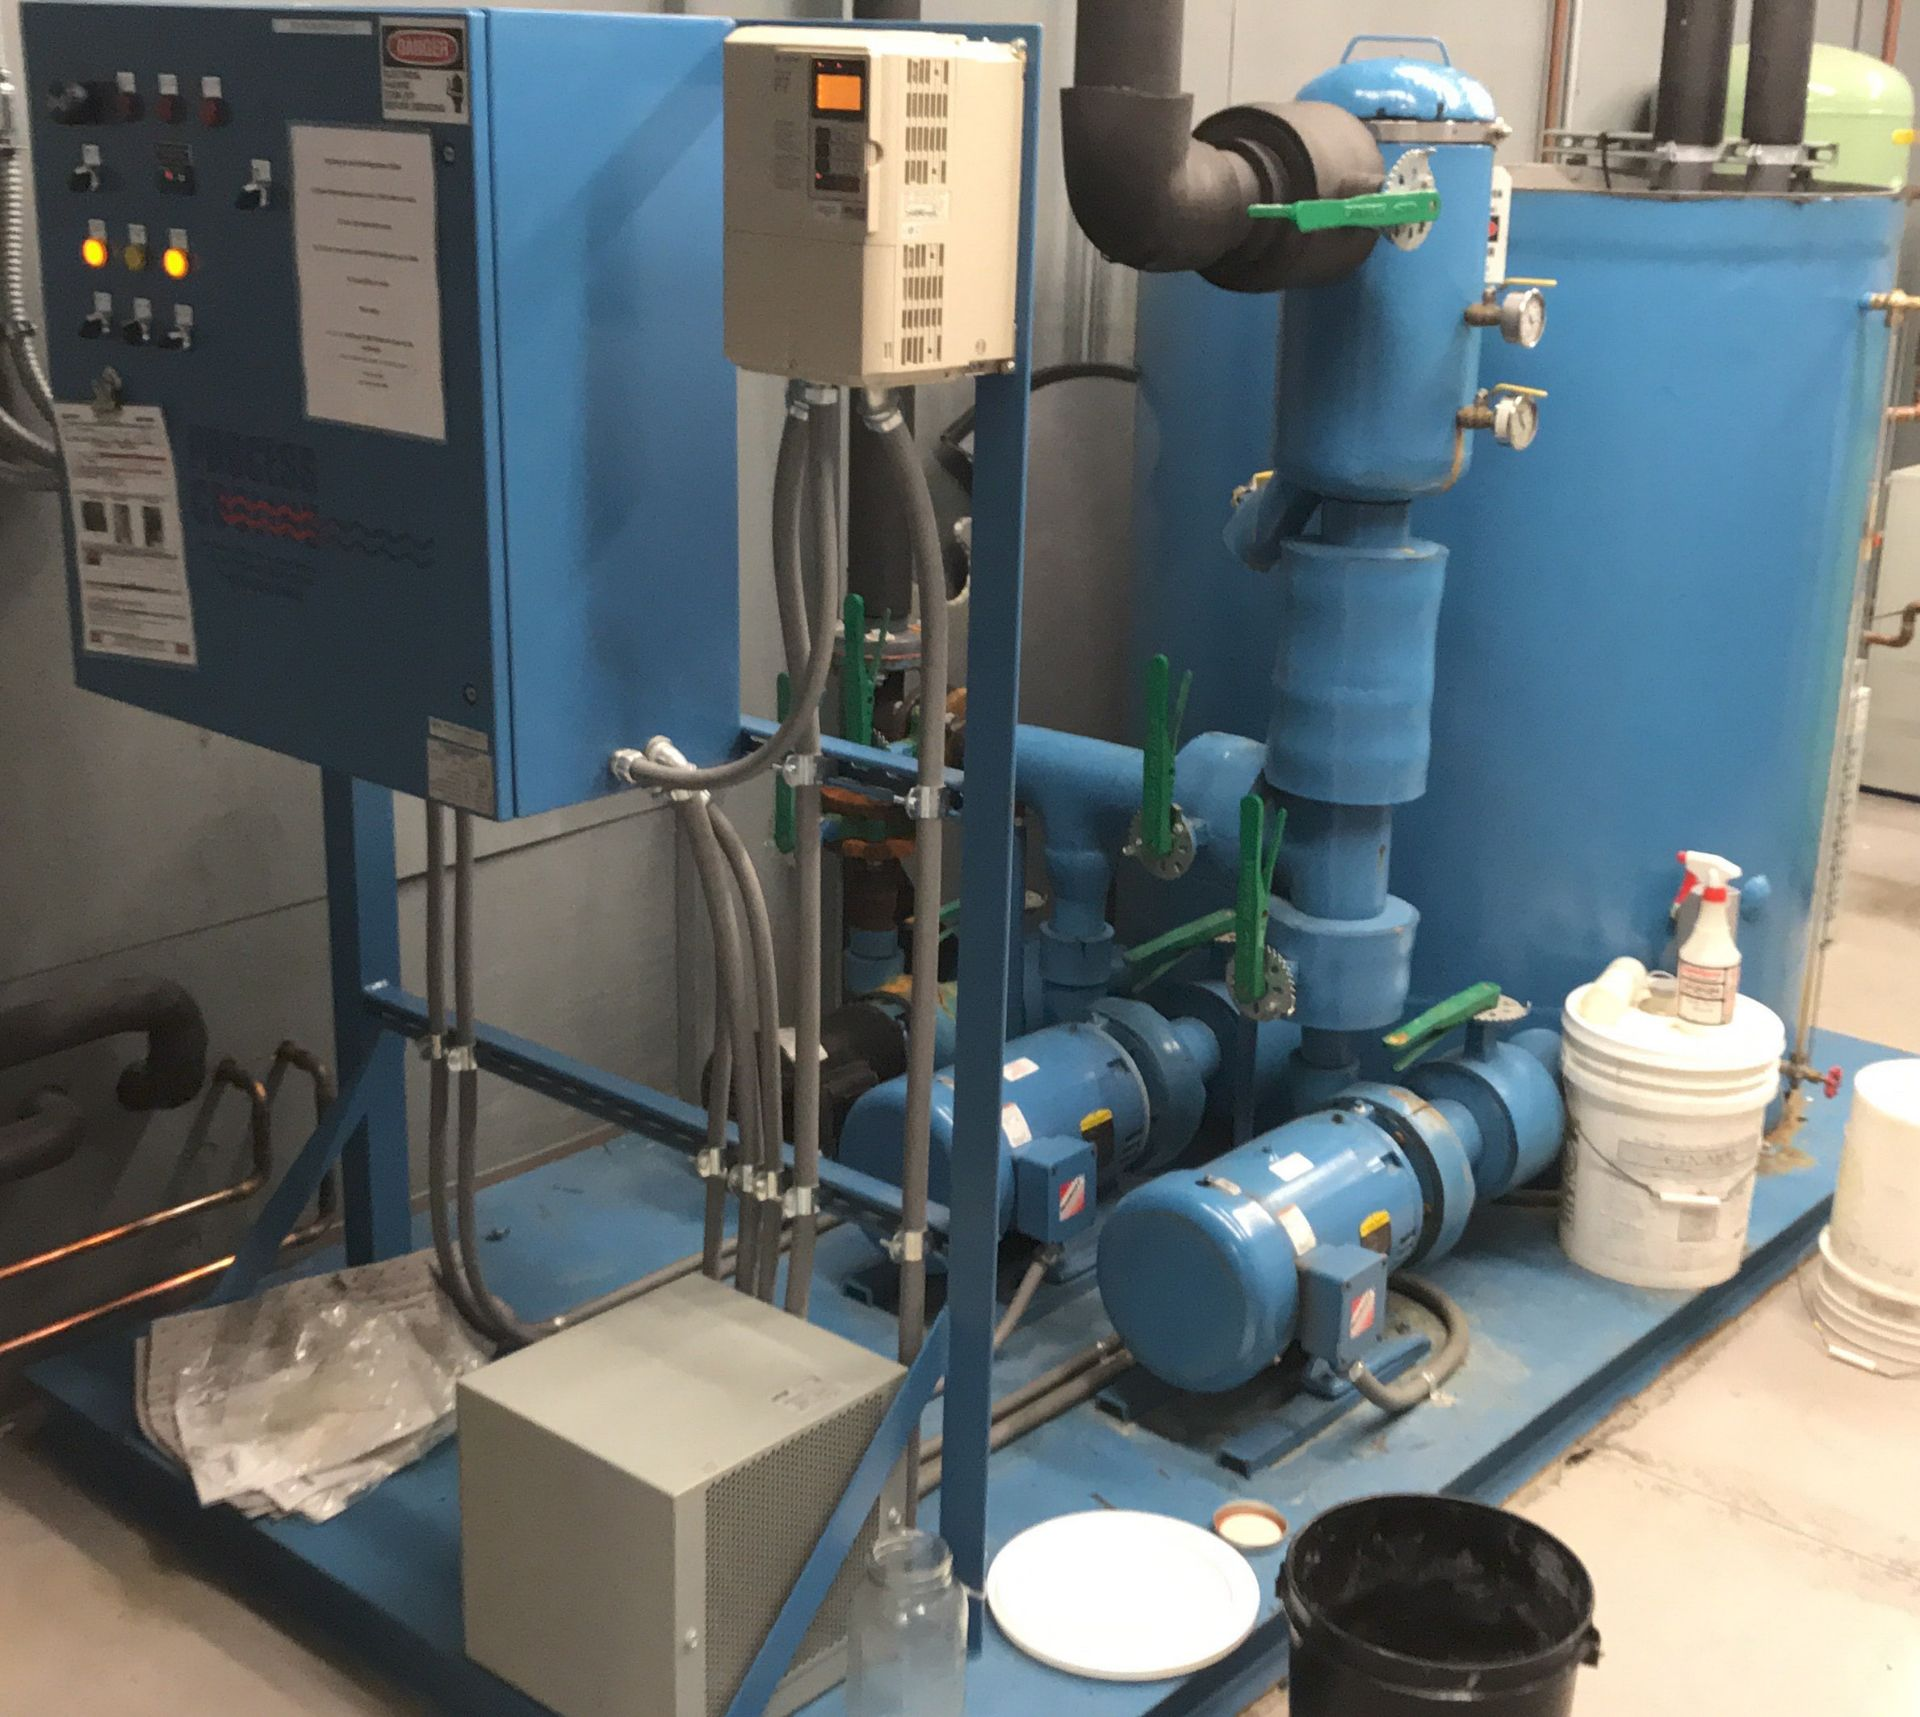 TRANE RAUJC404PC13A0DF00C00 ROOFTOP CHILLER UNIT WITH 460V, 3 PHASE, PROCESS COOLING SYSTEMS - Image 3 of 4